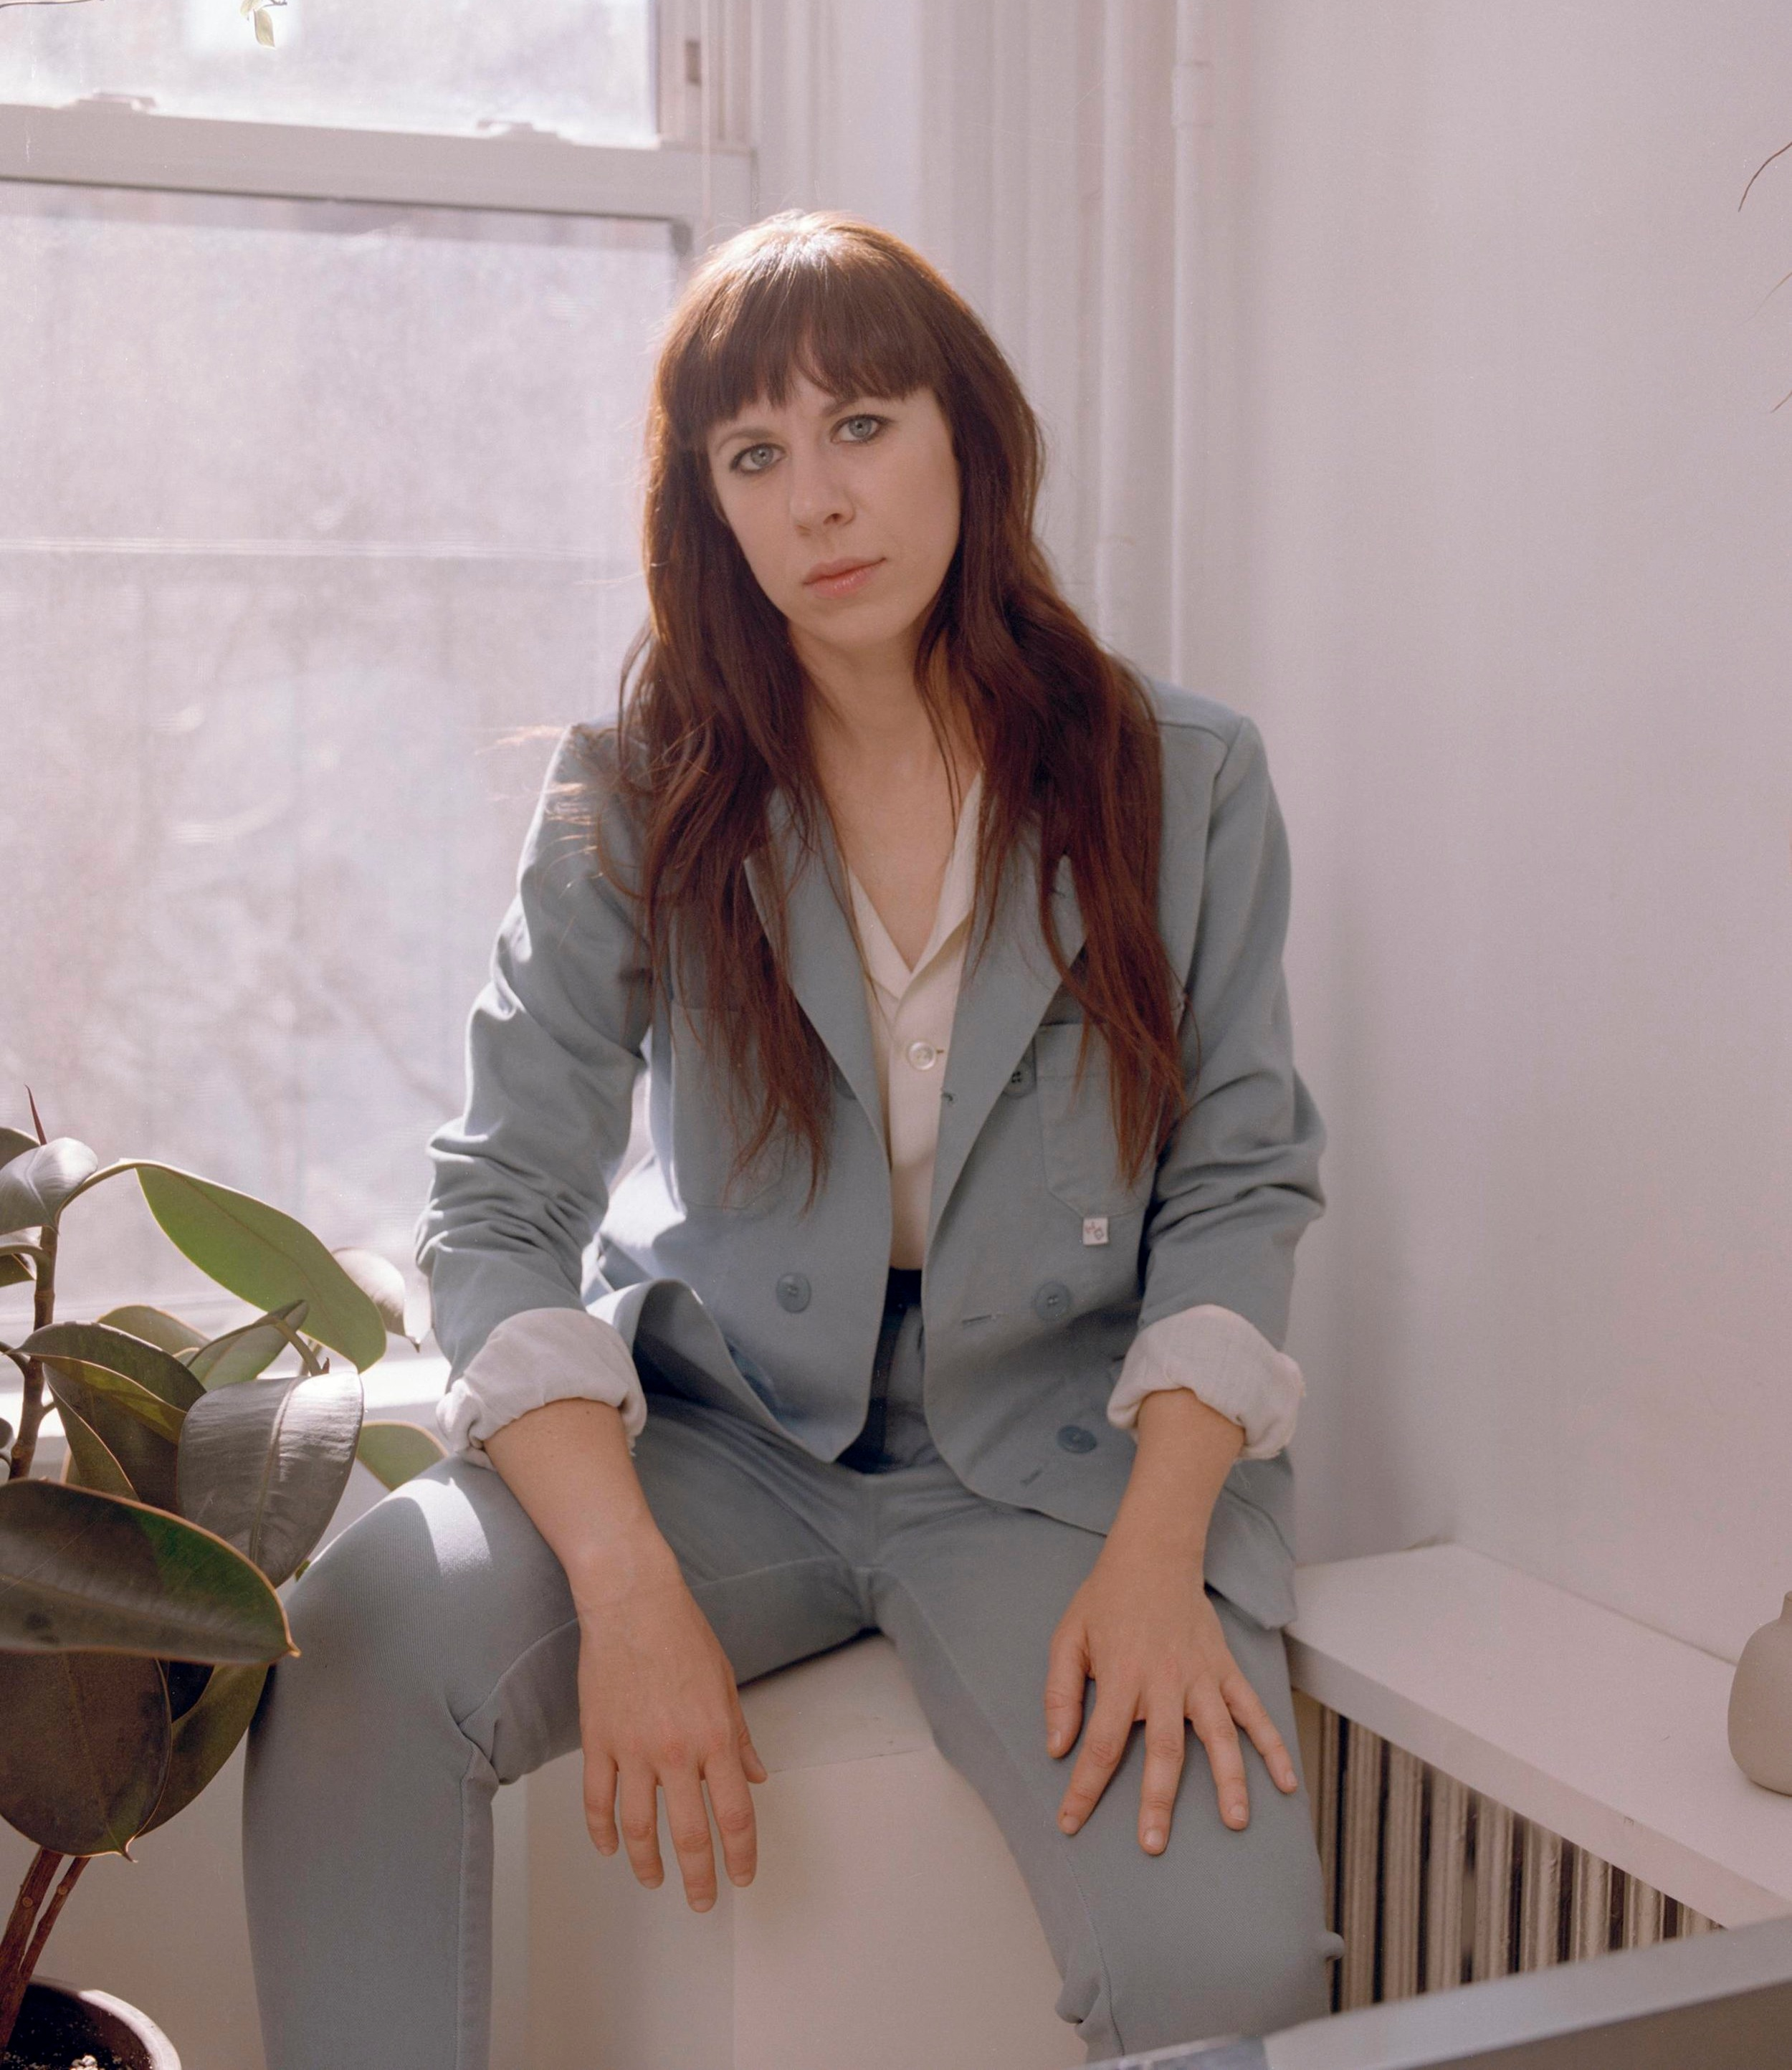 Missy Mazzoli, Photo credit Caroline Tompkins